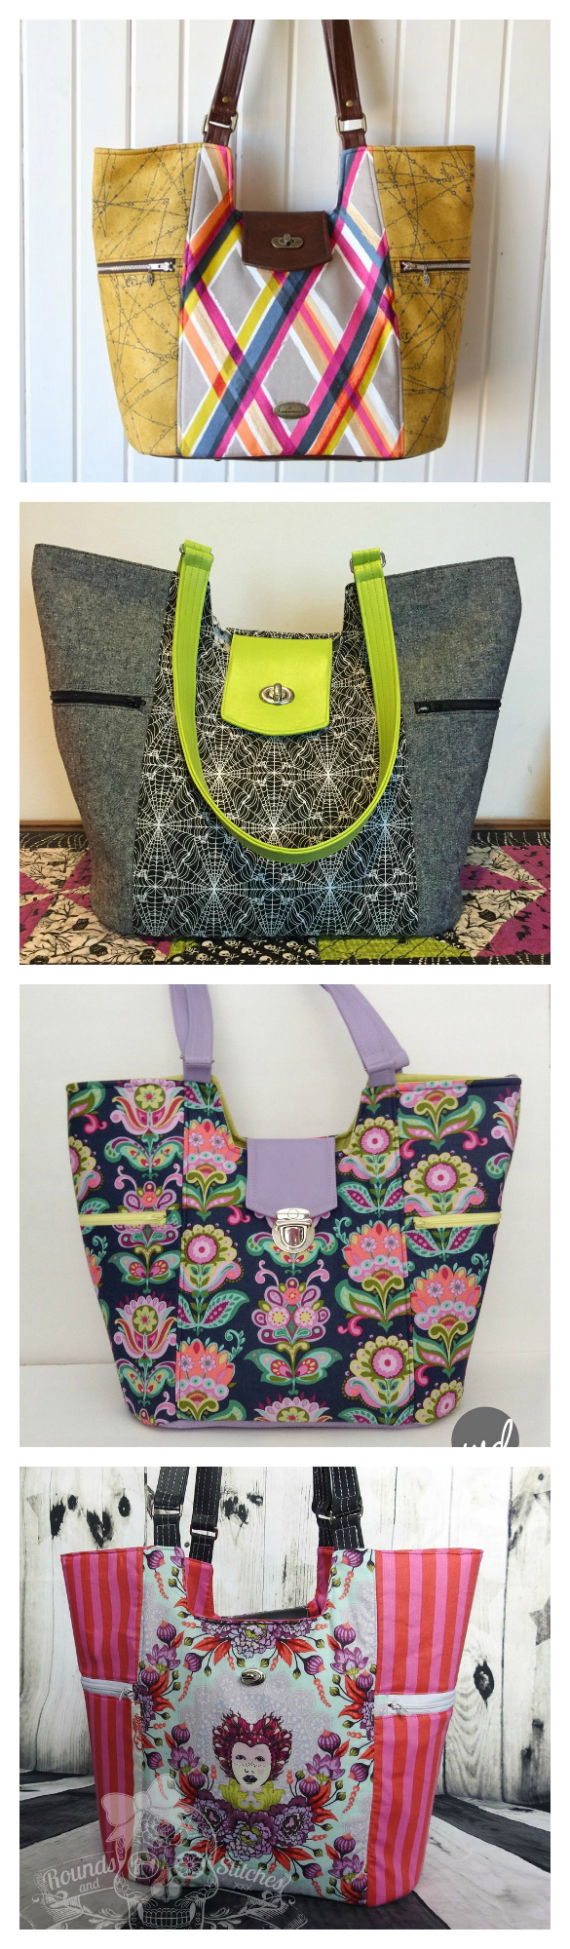 "If you want to make a very large bag then The Mimosa Market tote is the bag for you. It is 13.5"" wide by 13"" high by 8"" deep and has the following features: It has 2 large exterior side zipper pockets A large oval base An optional tab closure with instructions for a twist lock but can easily be substituted with a different closure The vinyl accents could easily be replaced with fabric - the instructions will apply to both methods The interior of the bag comes with 2 large slip pockets and an optional removable false bottom to give the bag extra support at the base."